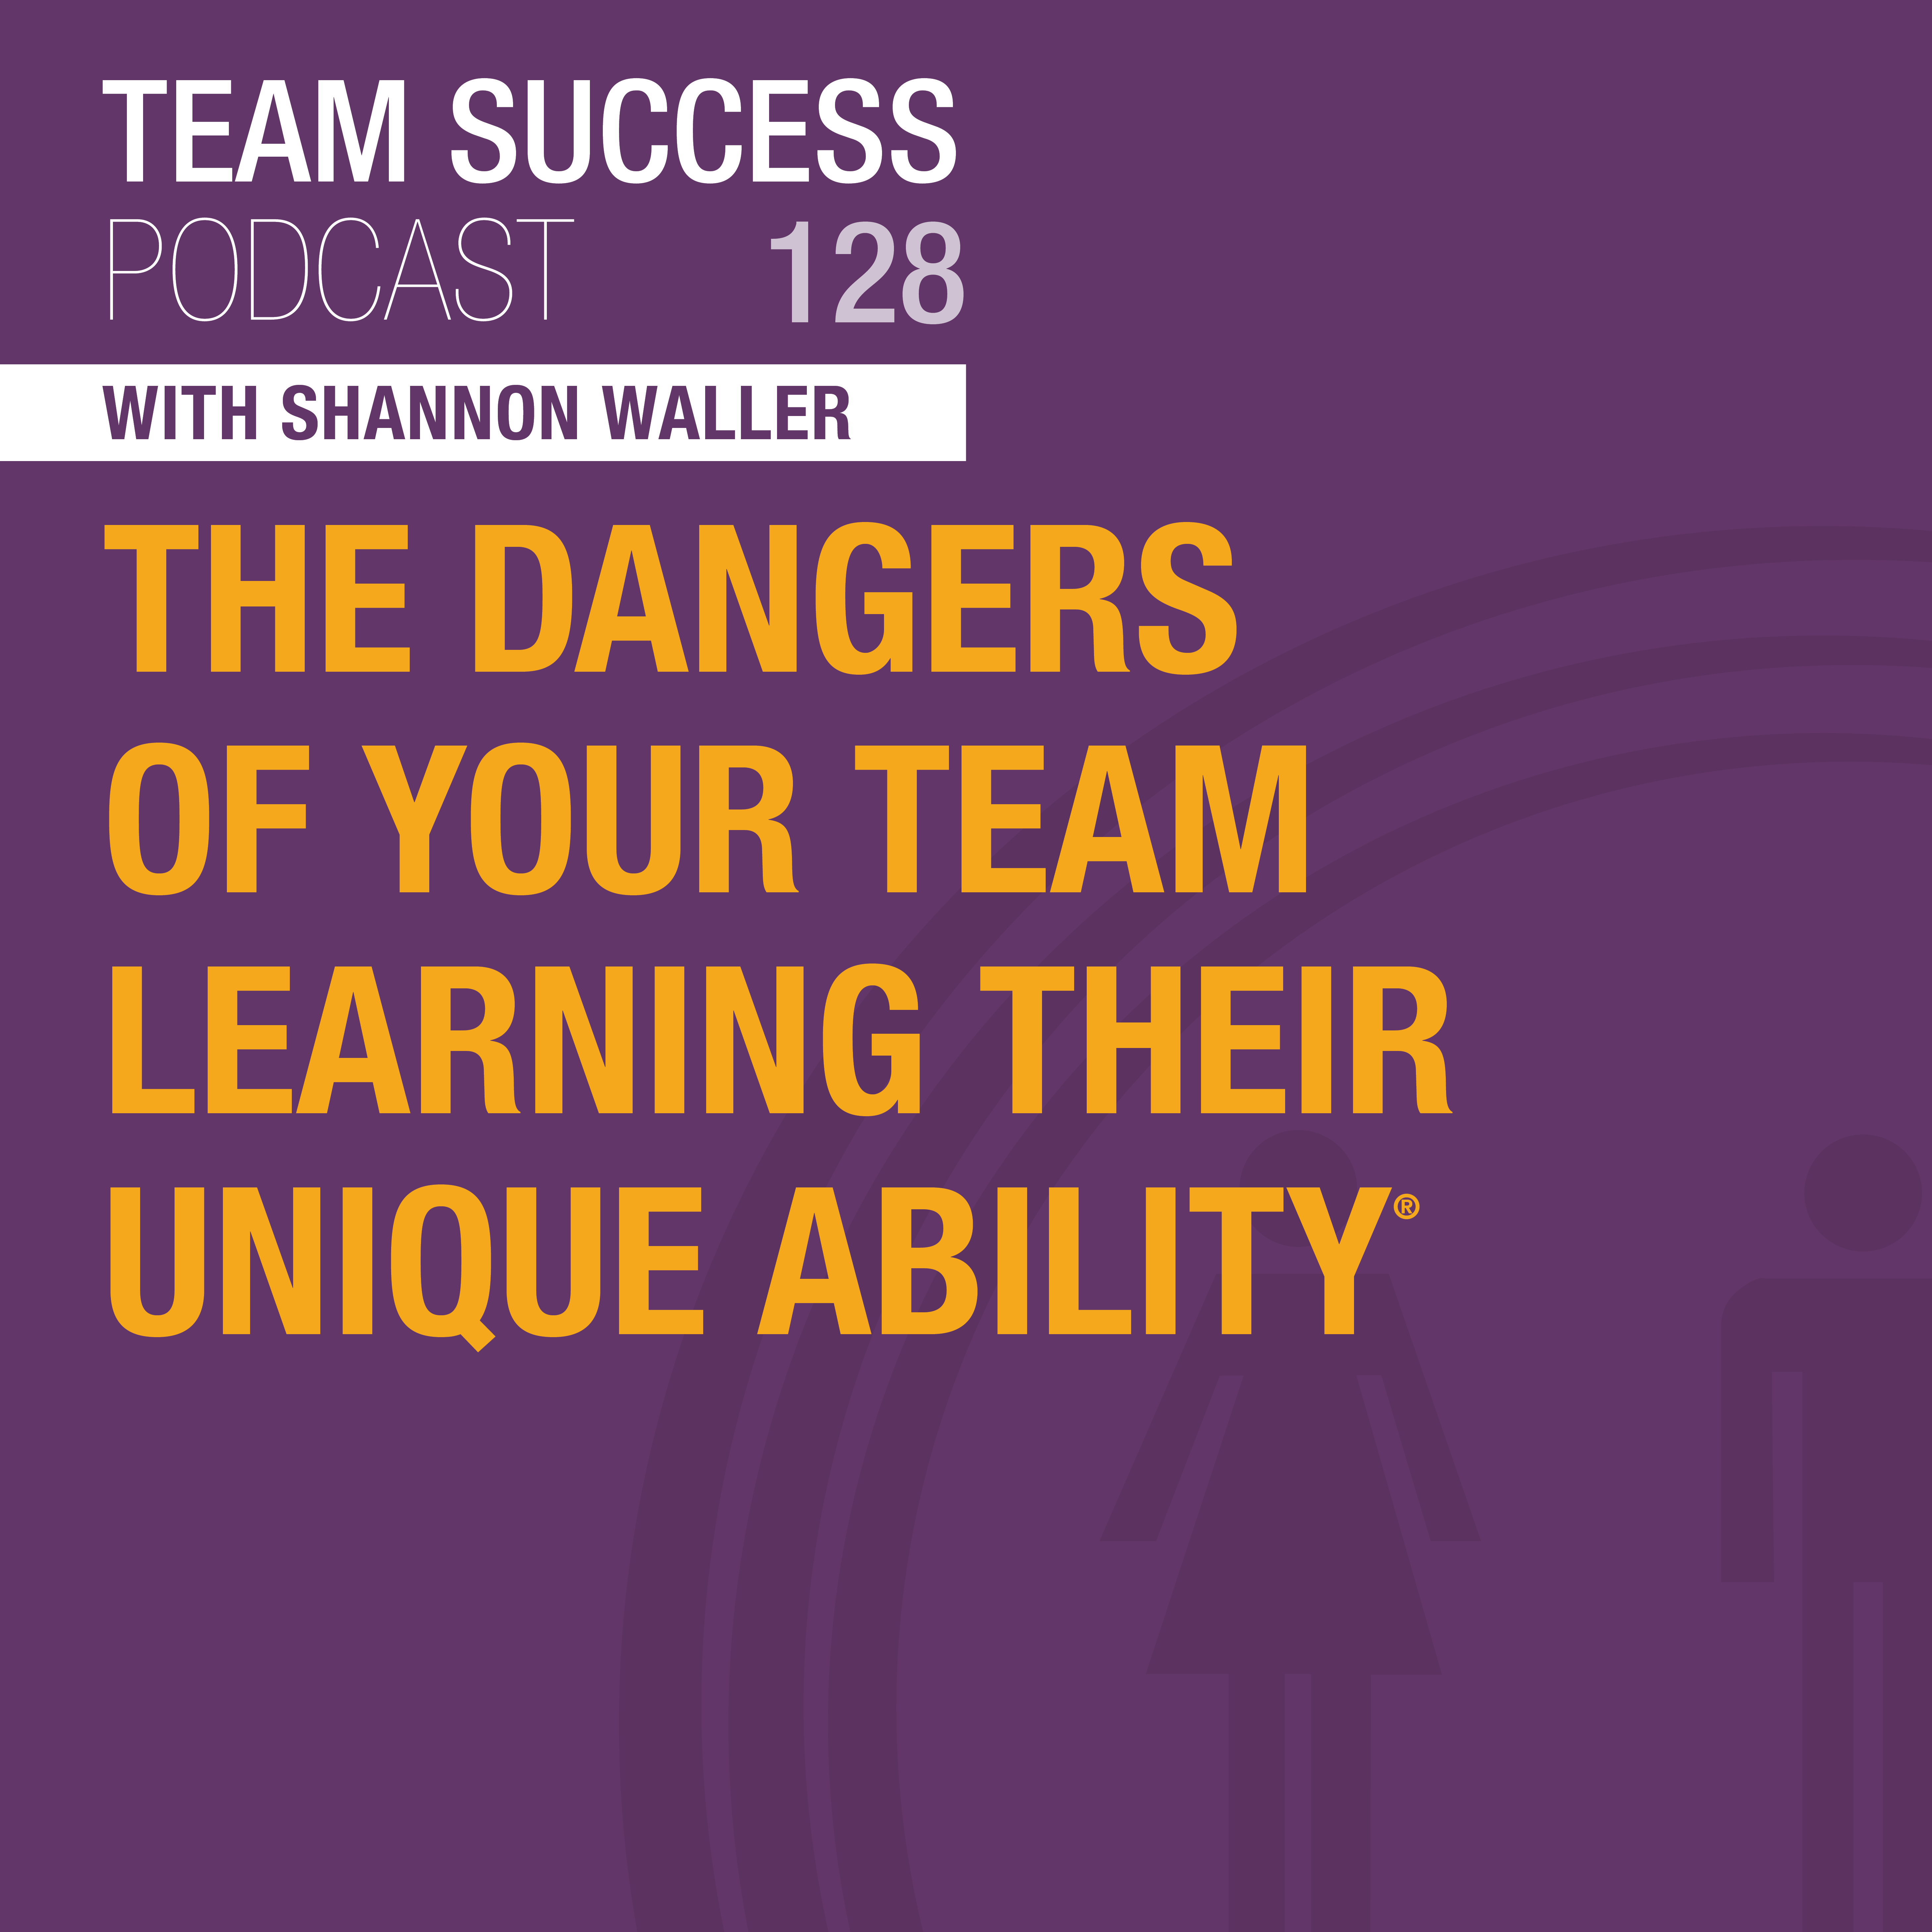 The Dangers Of Your Team Learning Their Unique Ability - Team Success Podcast